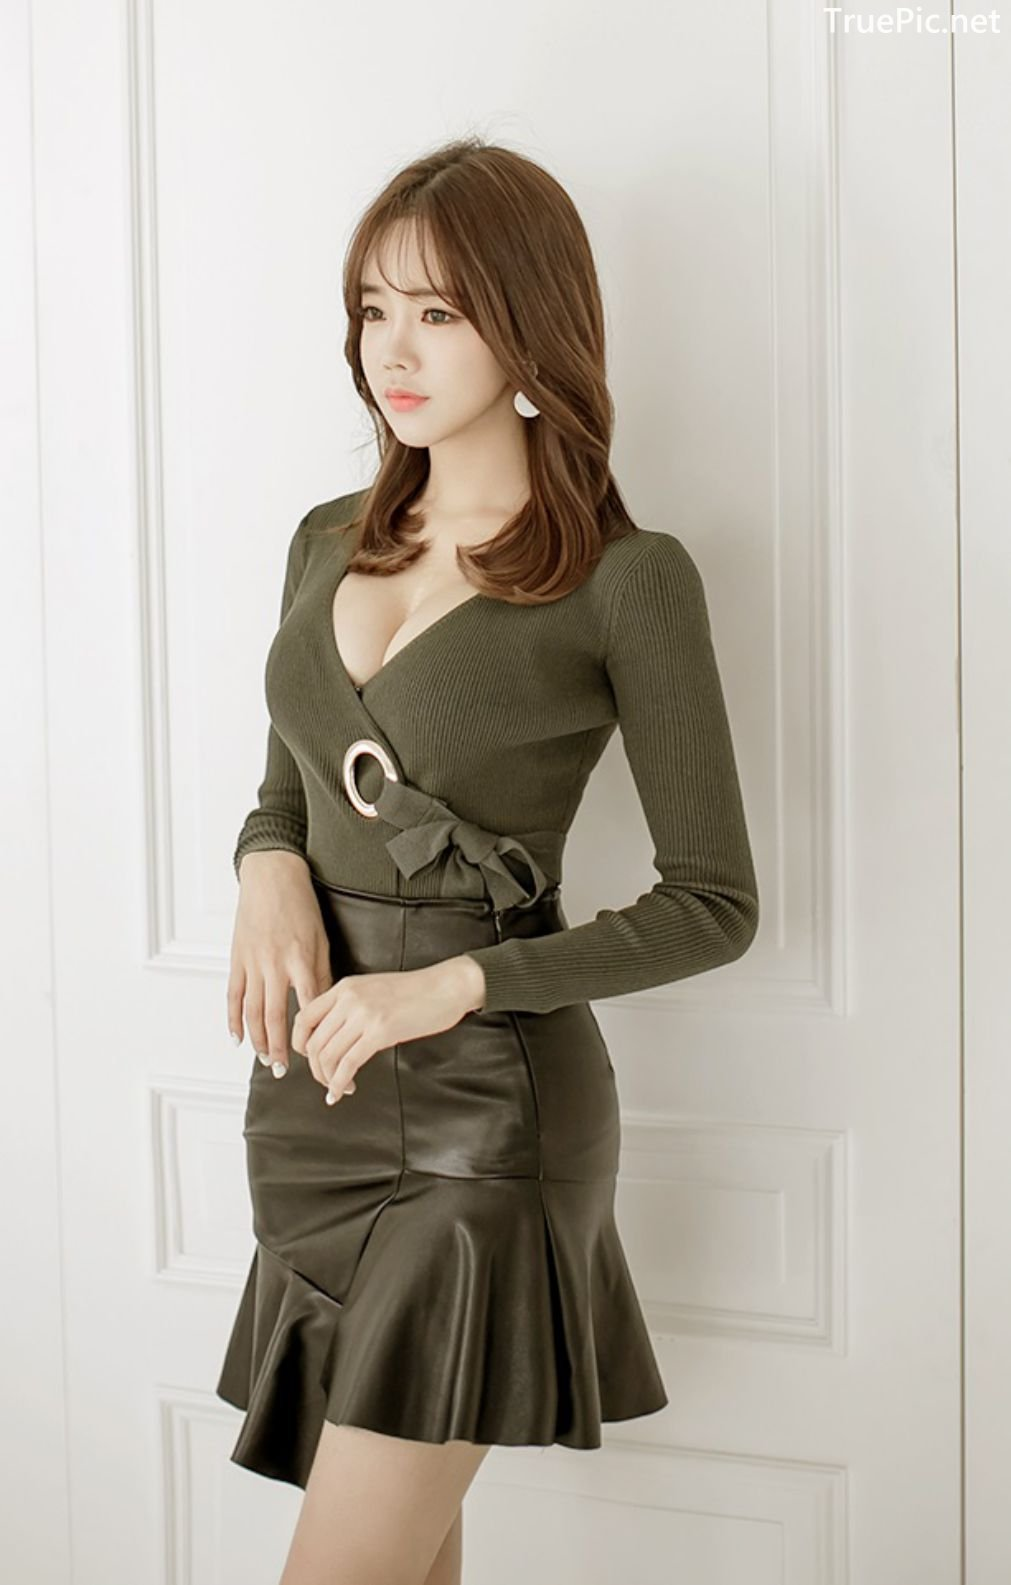 Image-Korean-Fashion-Model–Kang-Eun-Wook–Indoor-Photoshoot-Collection-2-TruePic.net- Picture-3